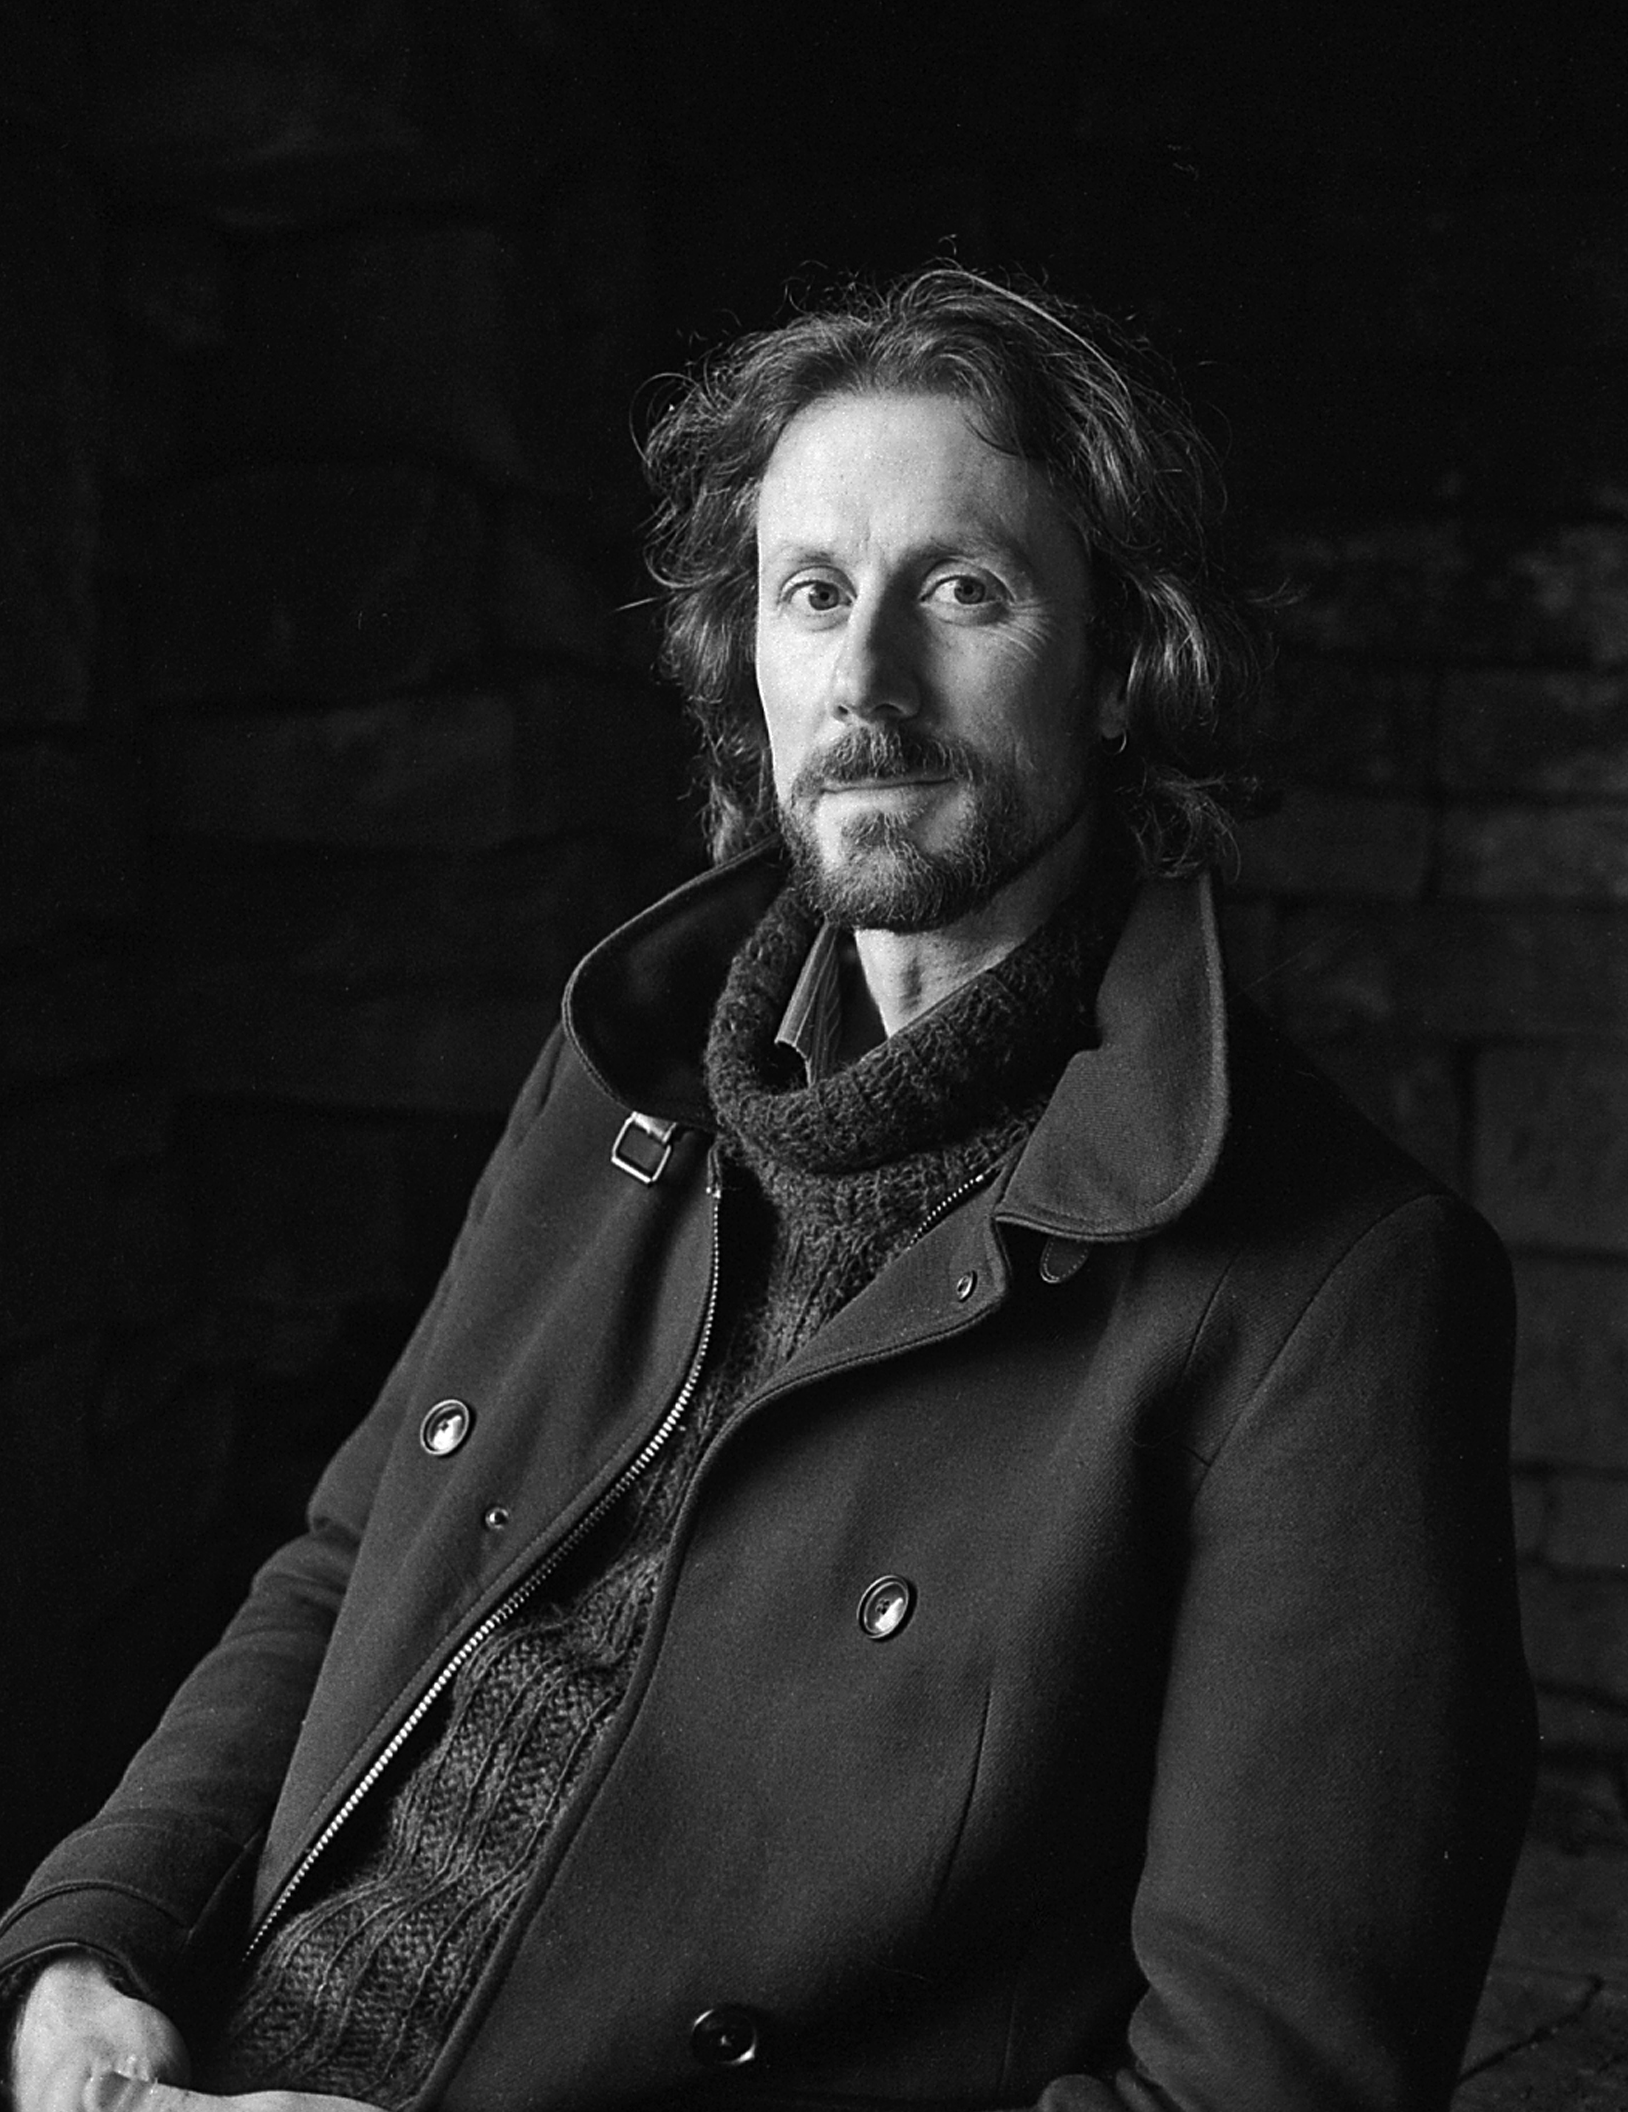 XX. PAUL KINGSNORTH - English writer, poet, and founder of the Wyrd School. December 2018.